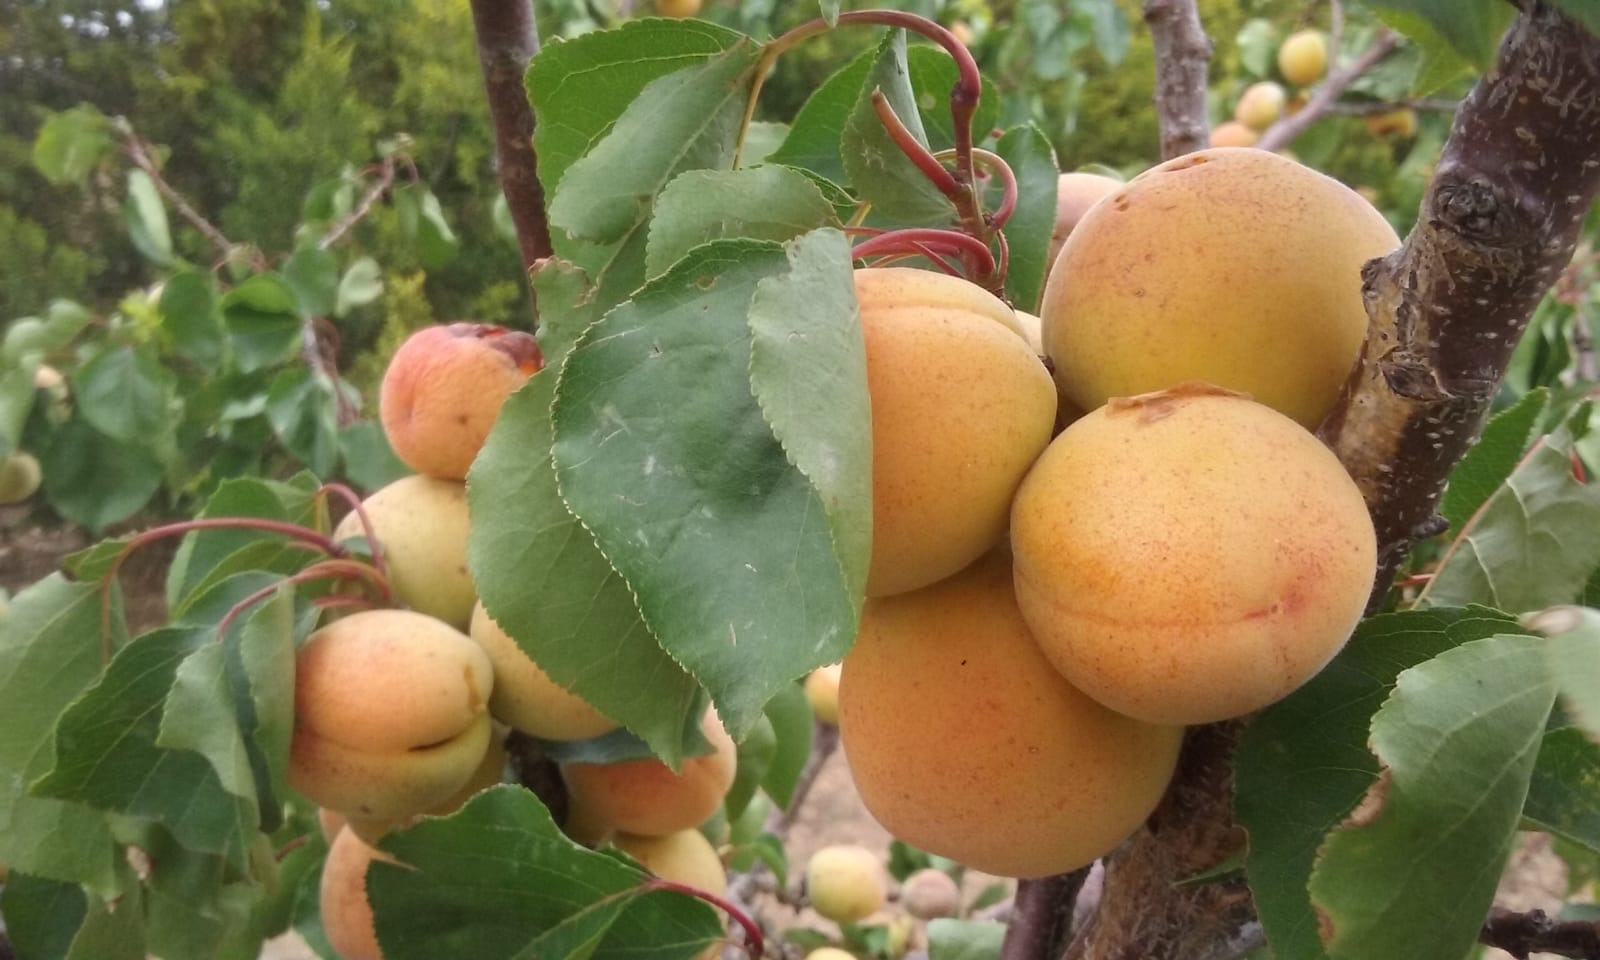 Peaches ripening on a tree in Australia